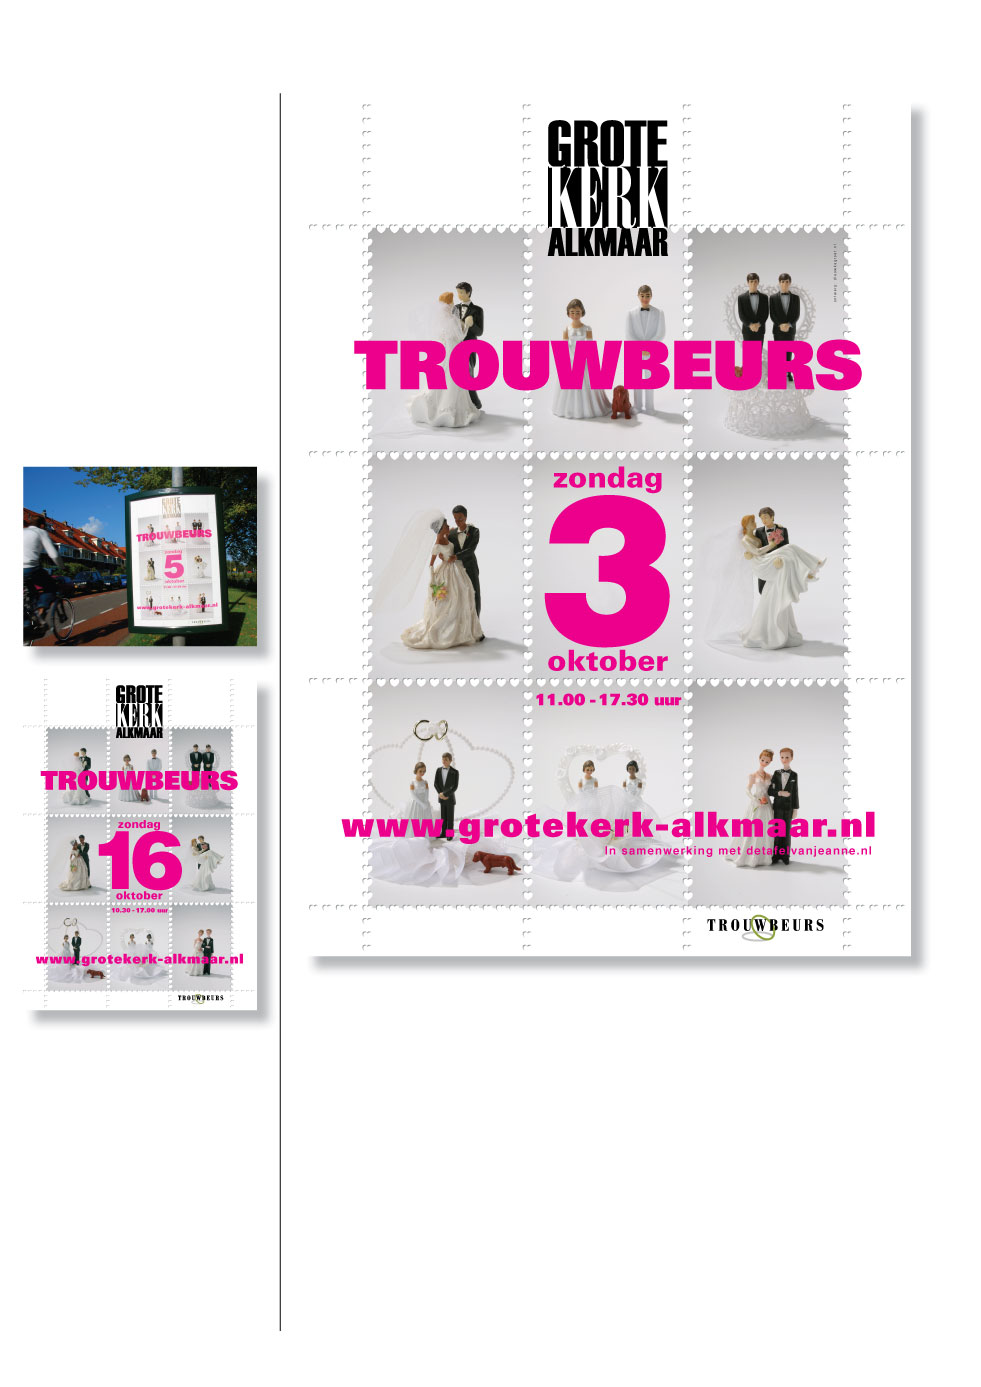 Trouwbeurs